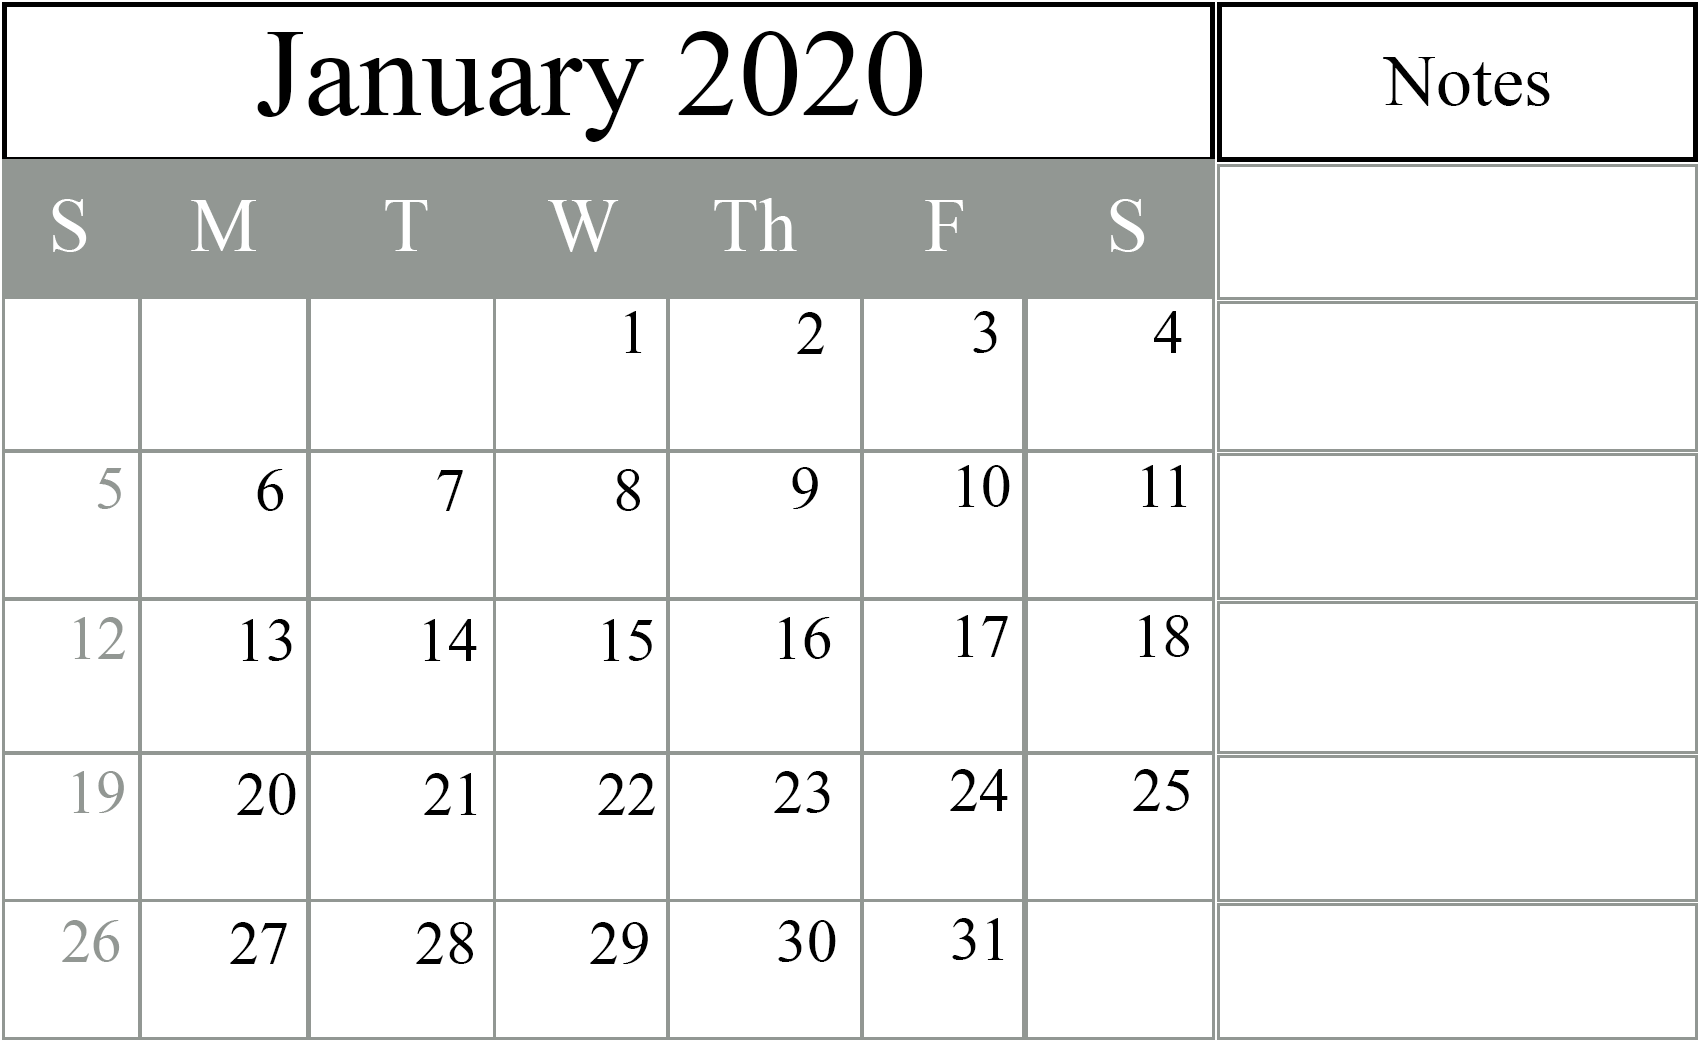 January 2020 Holidays Calendar with Notes